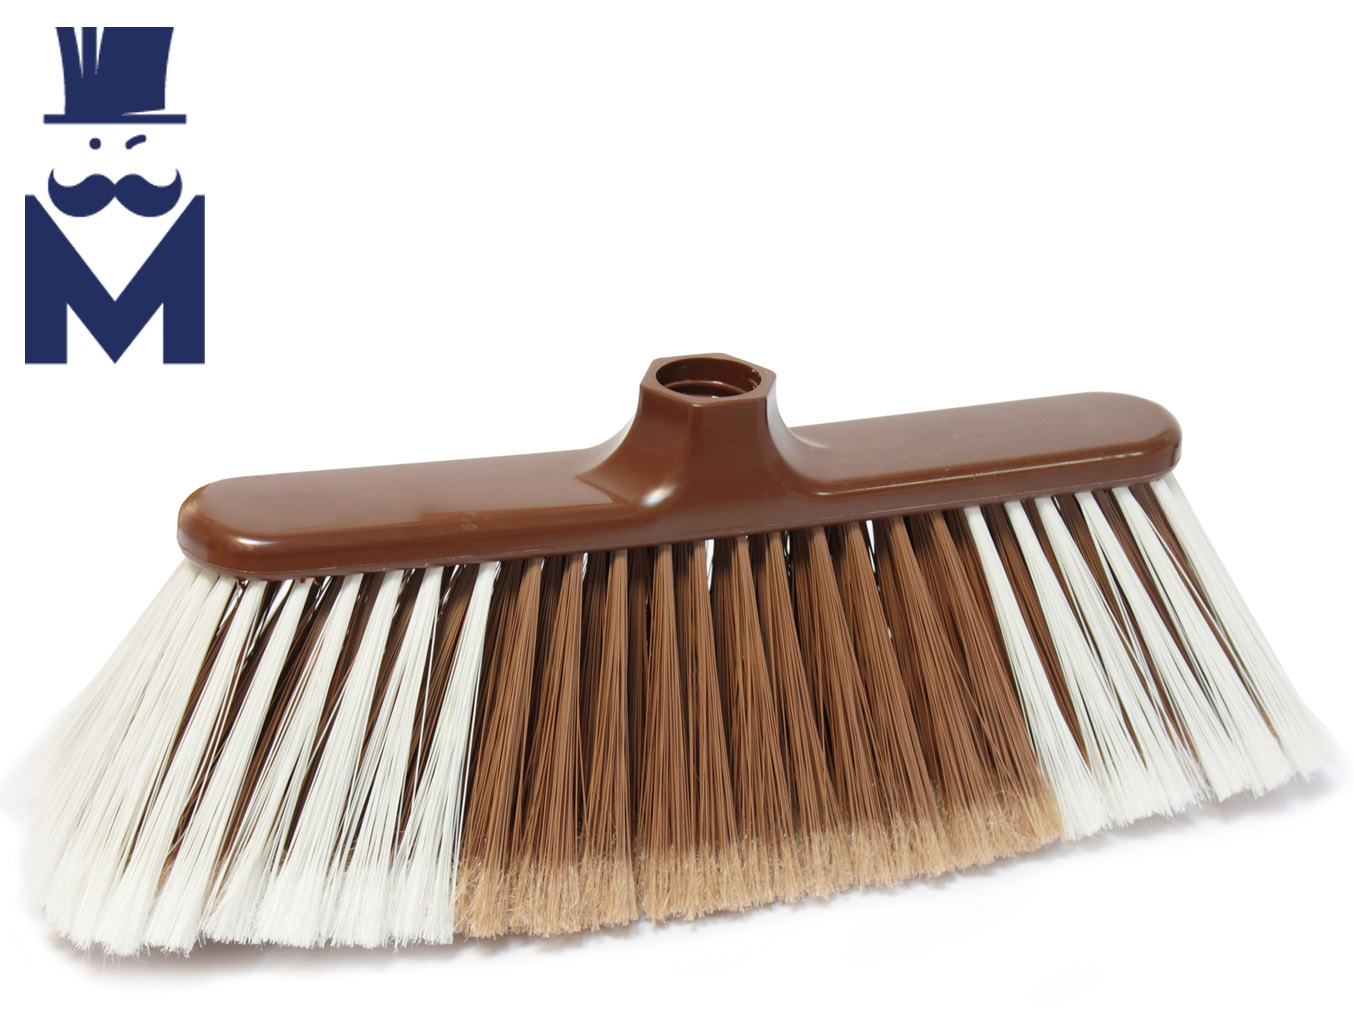 /en/products/catalog/category/1-plastic-brushes.html